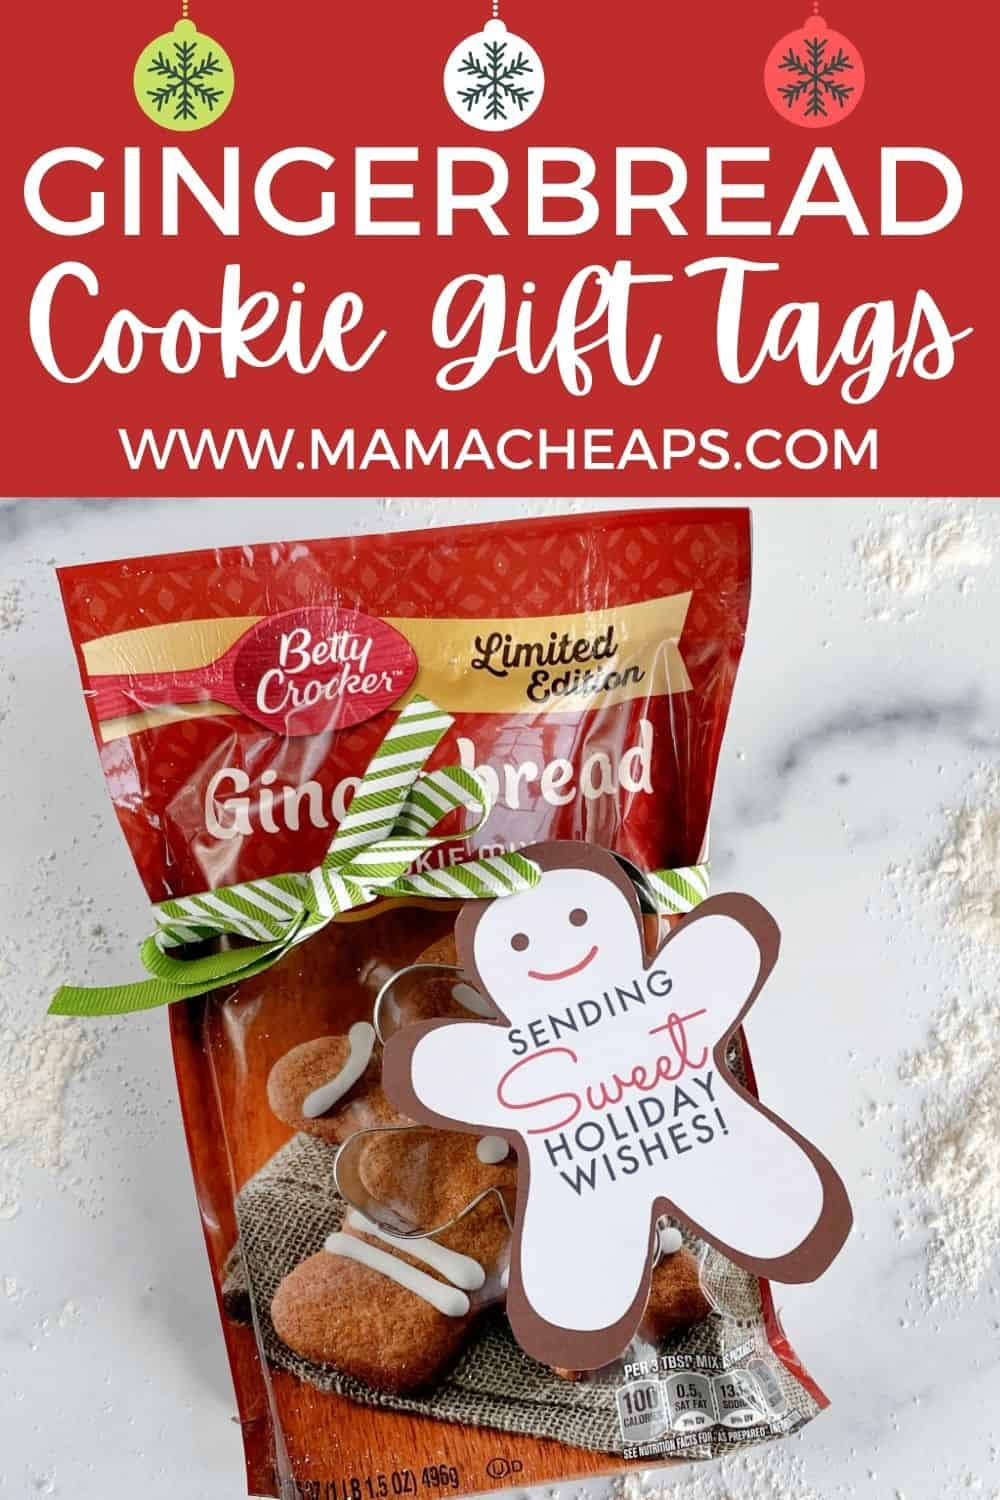 Gingerbread Cookies Gift PIN